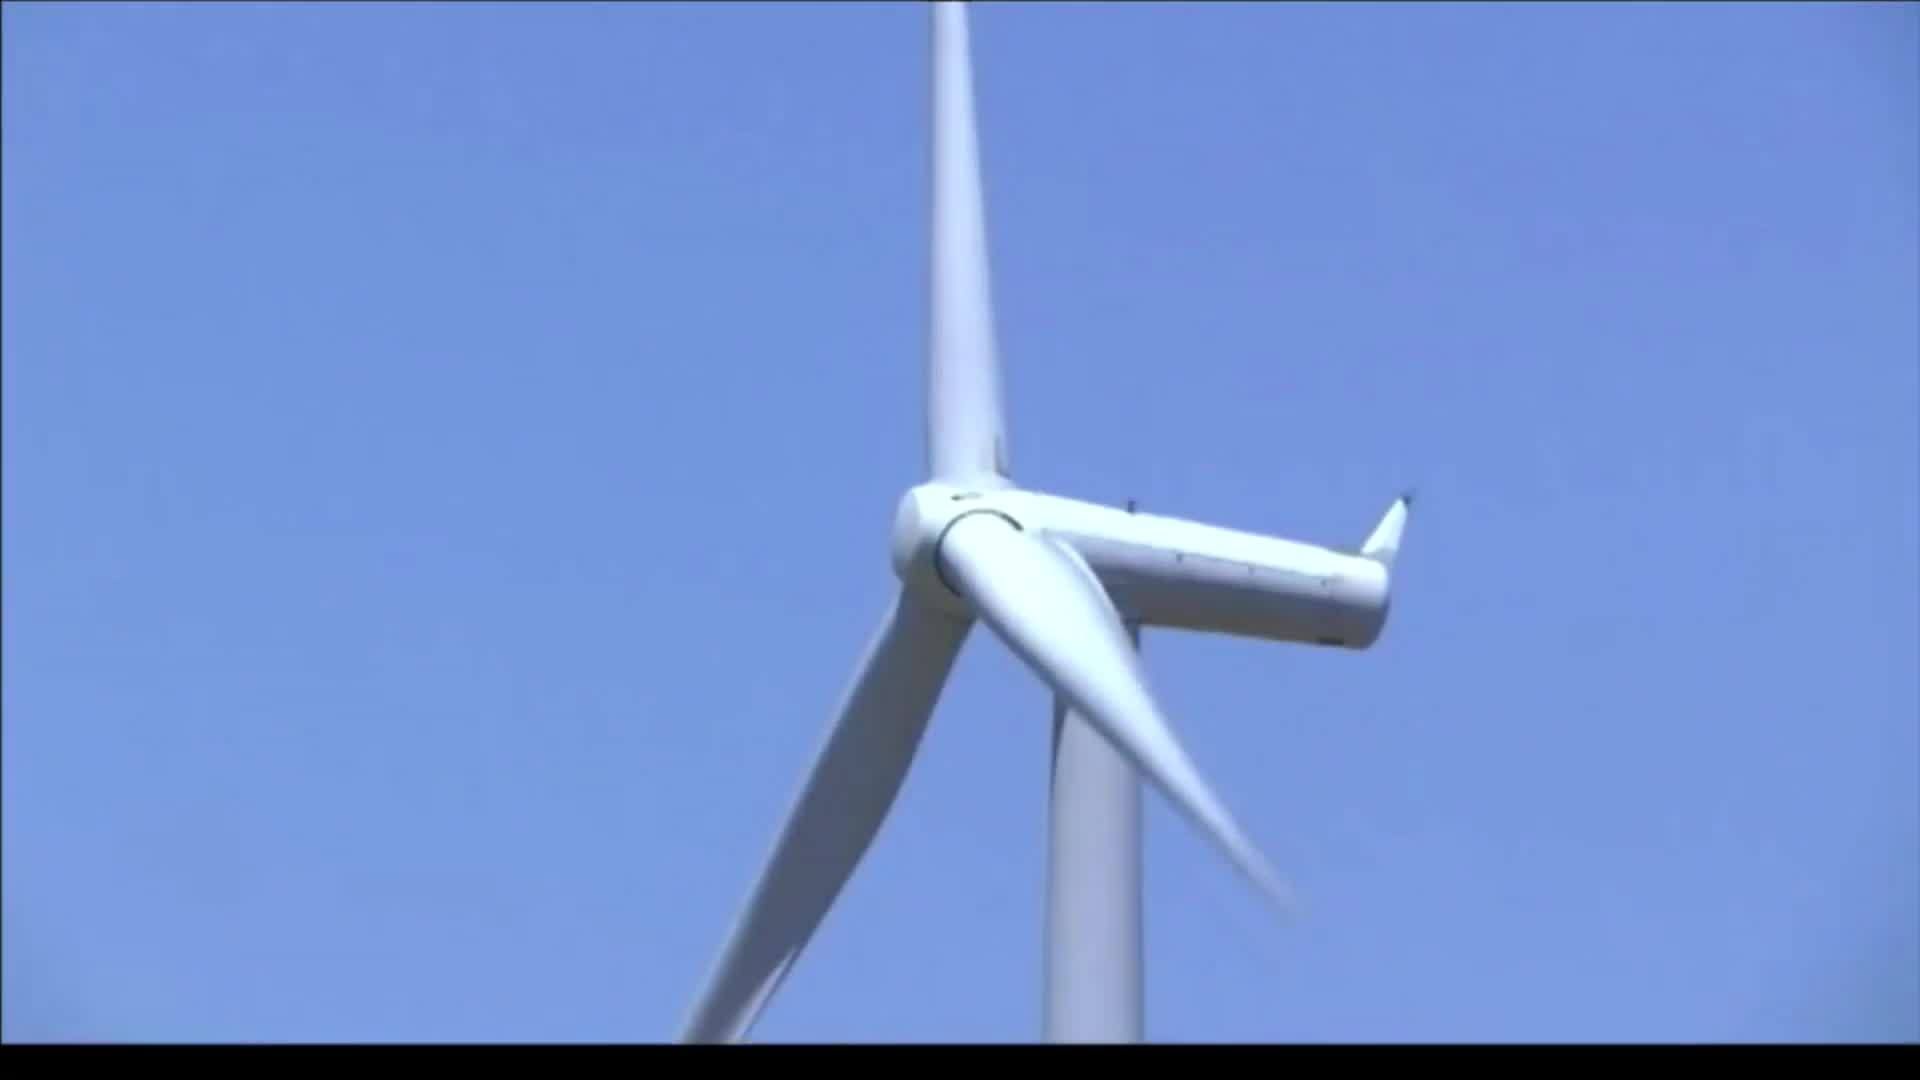 Meeting_to_be_held_on_proposed_wind_farm_4_20190322214039